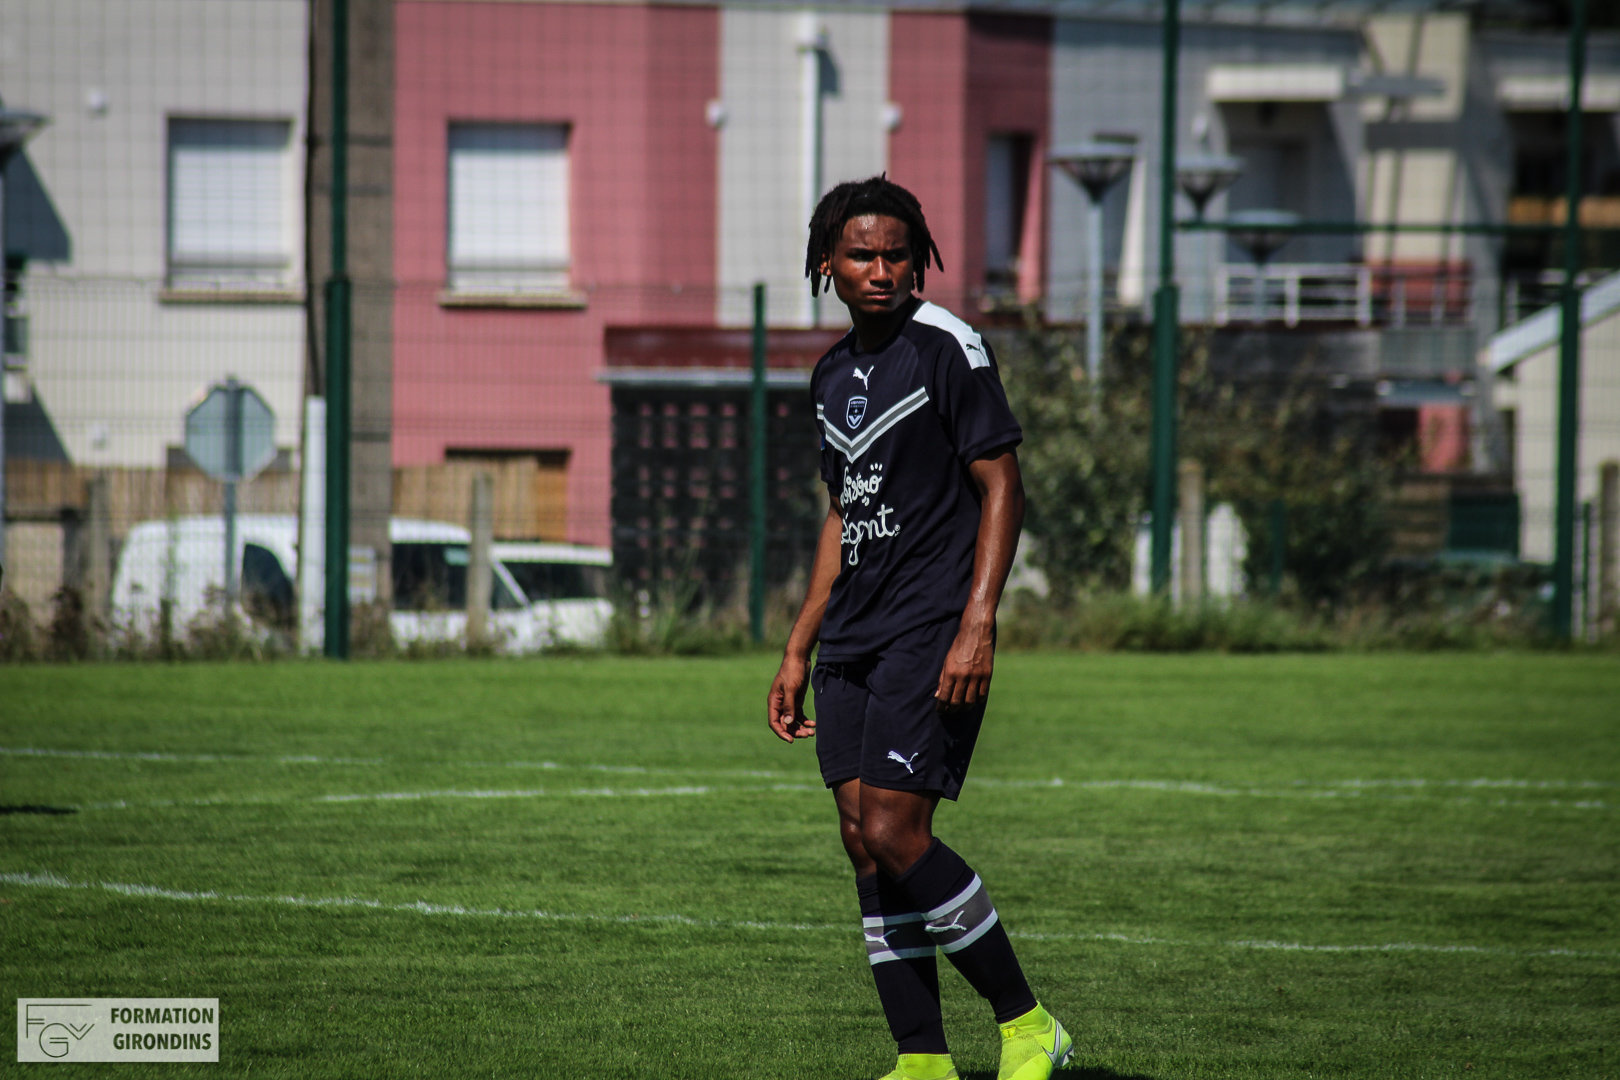 Cfa Girondins : Une victoire pour commencer - Formation Girondins